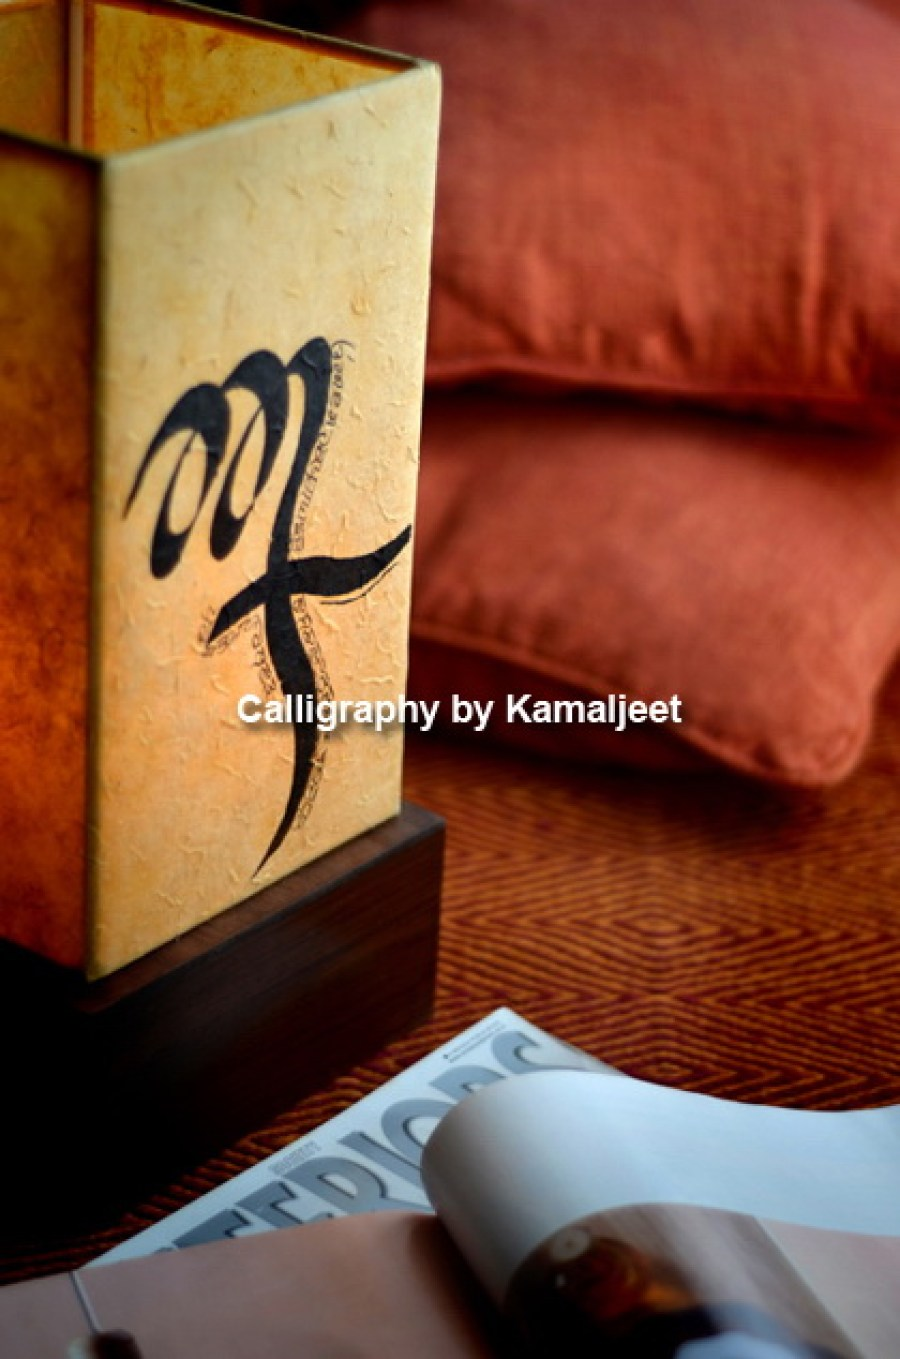 Calligraphy On Lamps Add An Artistic appeal To Homes And Office Spaces